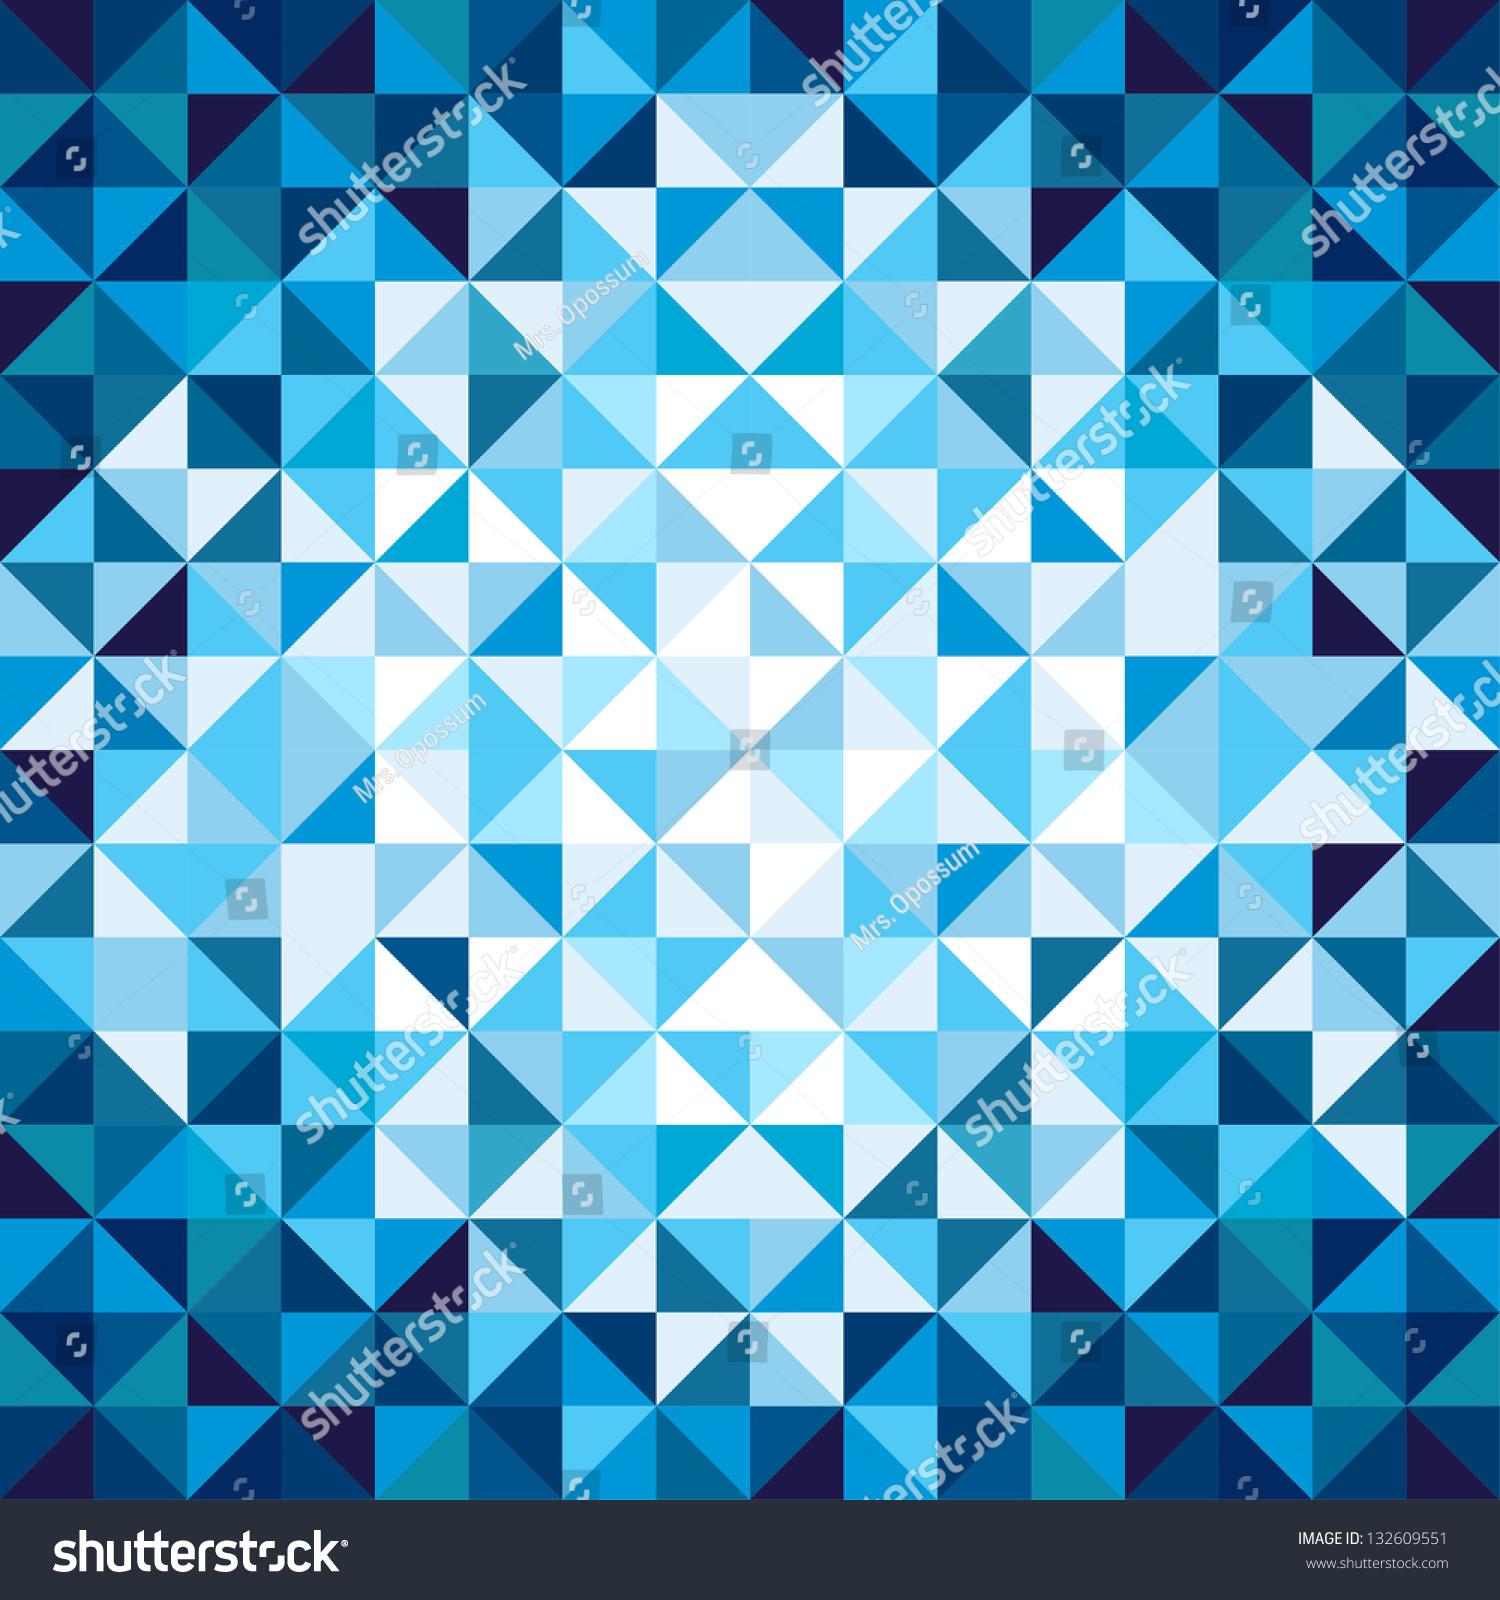 stock vector geometric background - photo #28